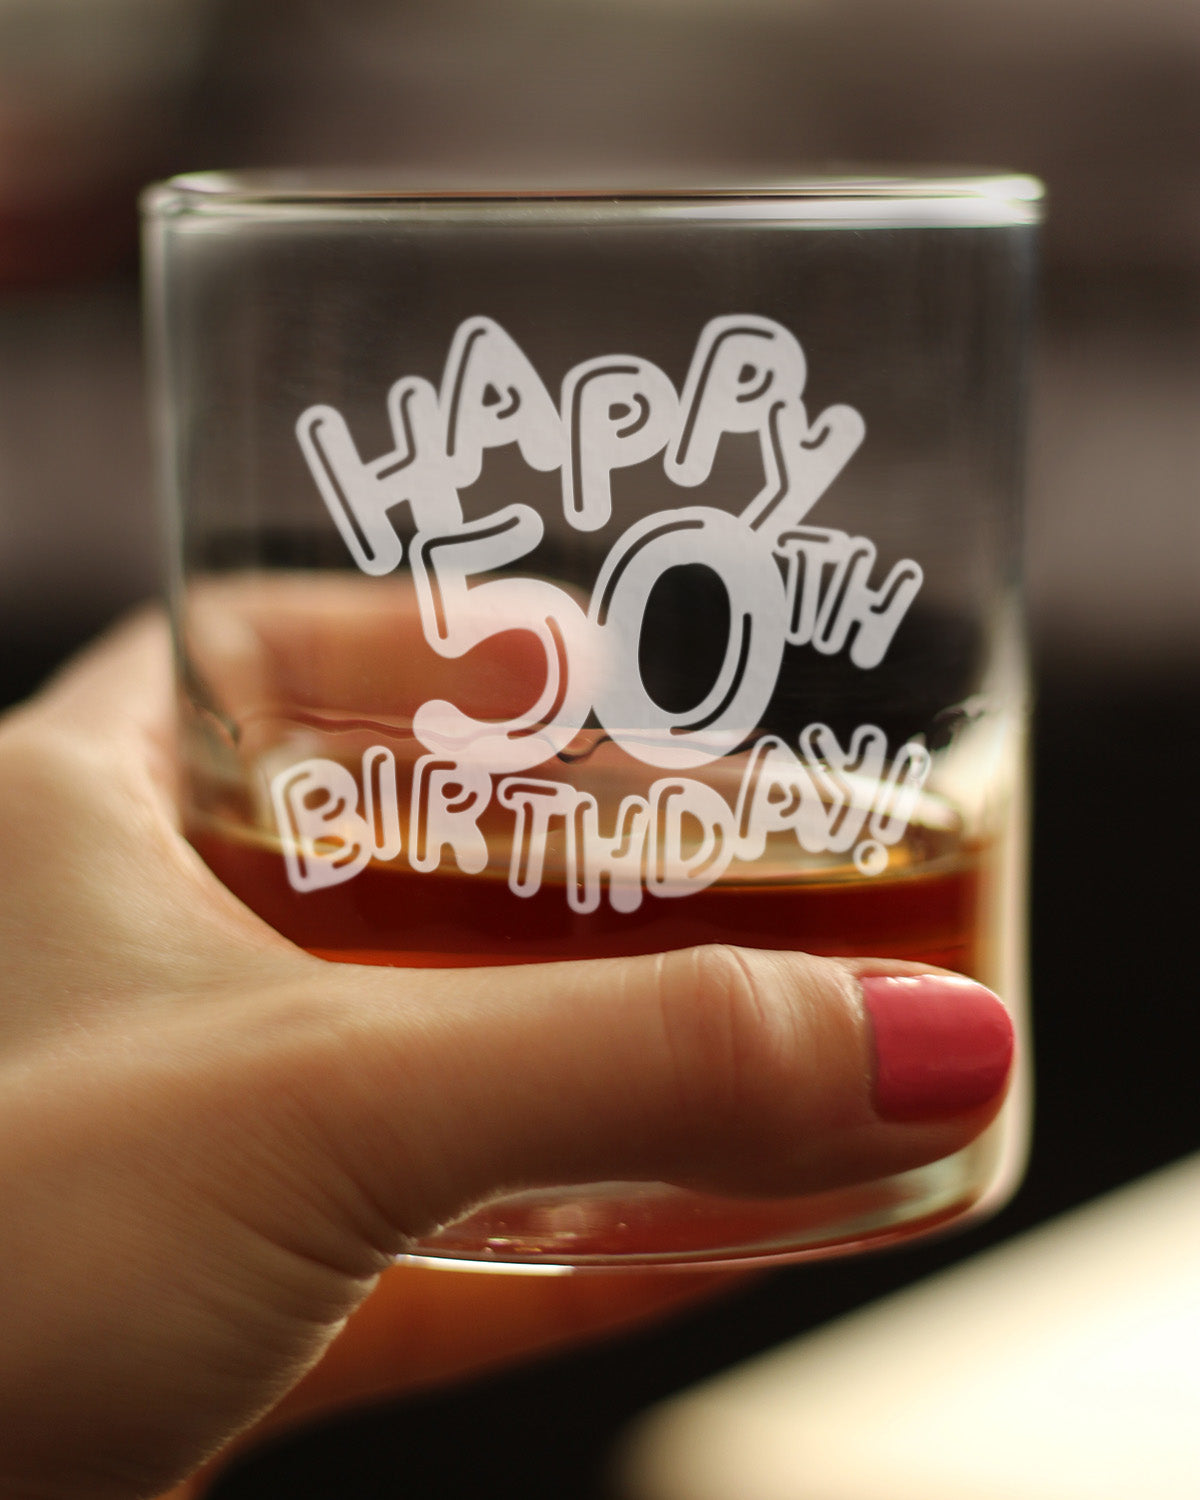 Happy 50th Birthday Balloons - 10 Ounce Rocks Glass